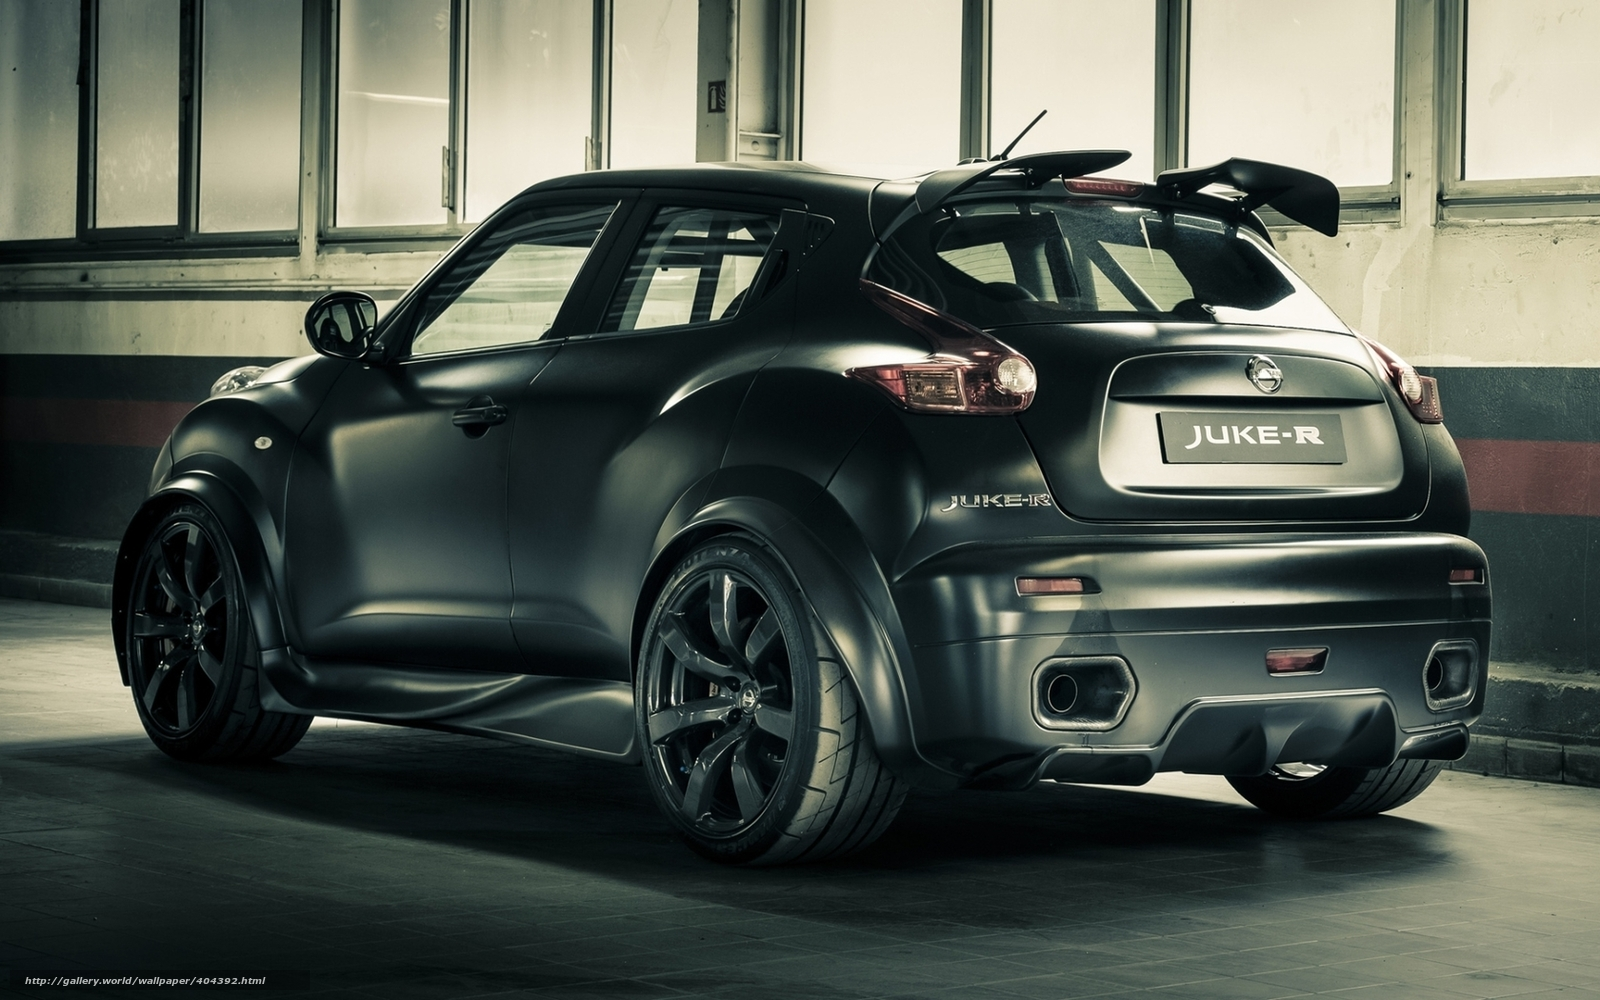 Download wallpaper nissan juke concept black free desktop wallpaper in the resolution 1680x1050 picture 404392